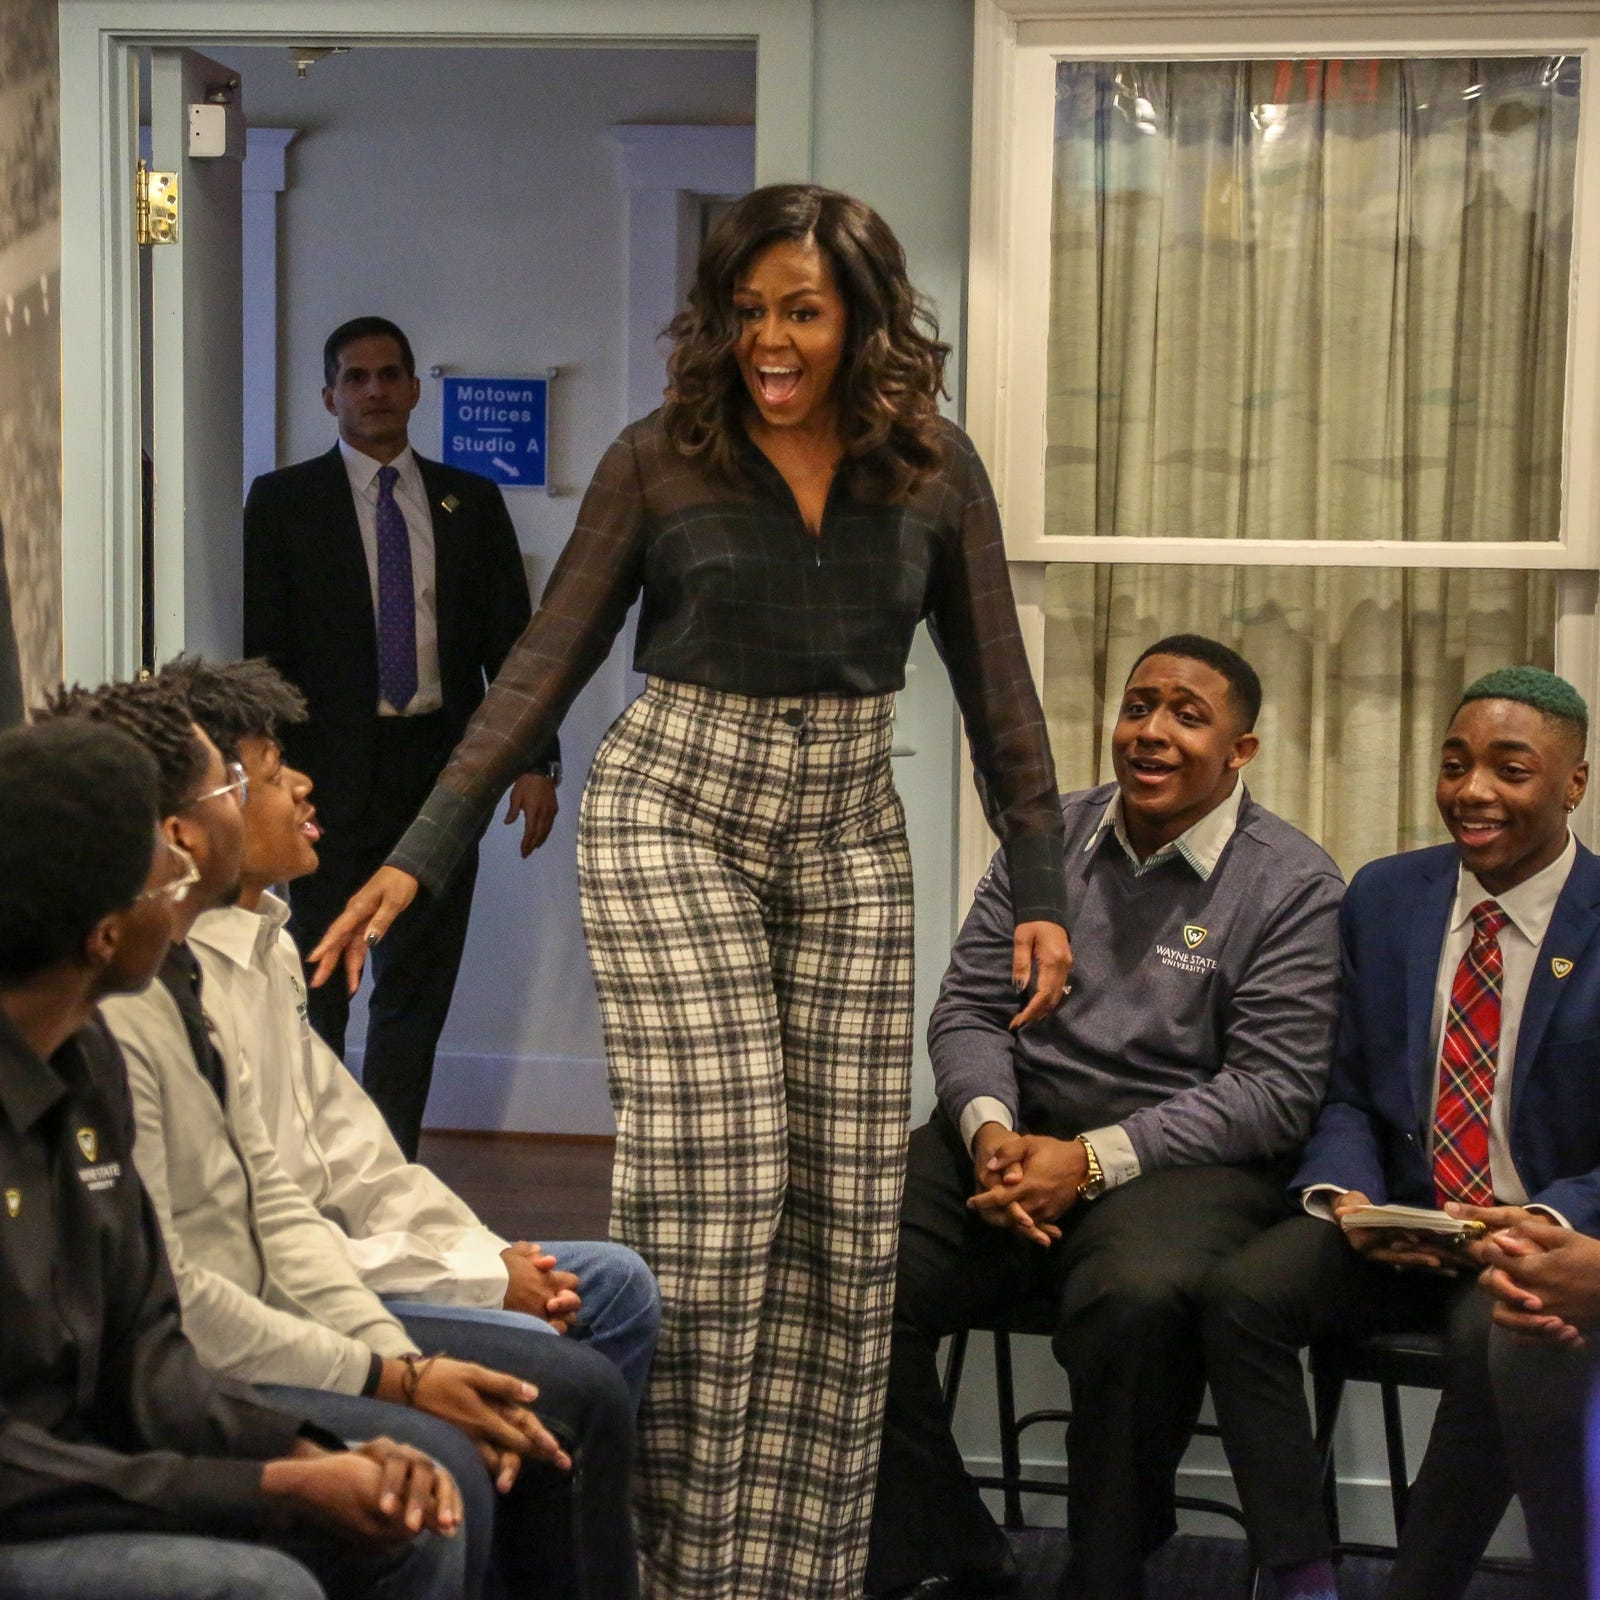 Michelle Obama stuns Wayne State Uni. students at the Motown Museum